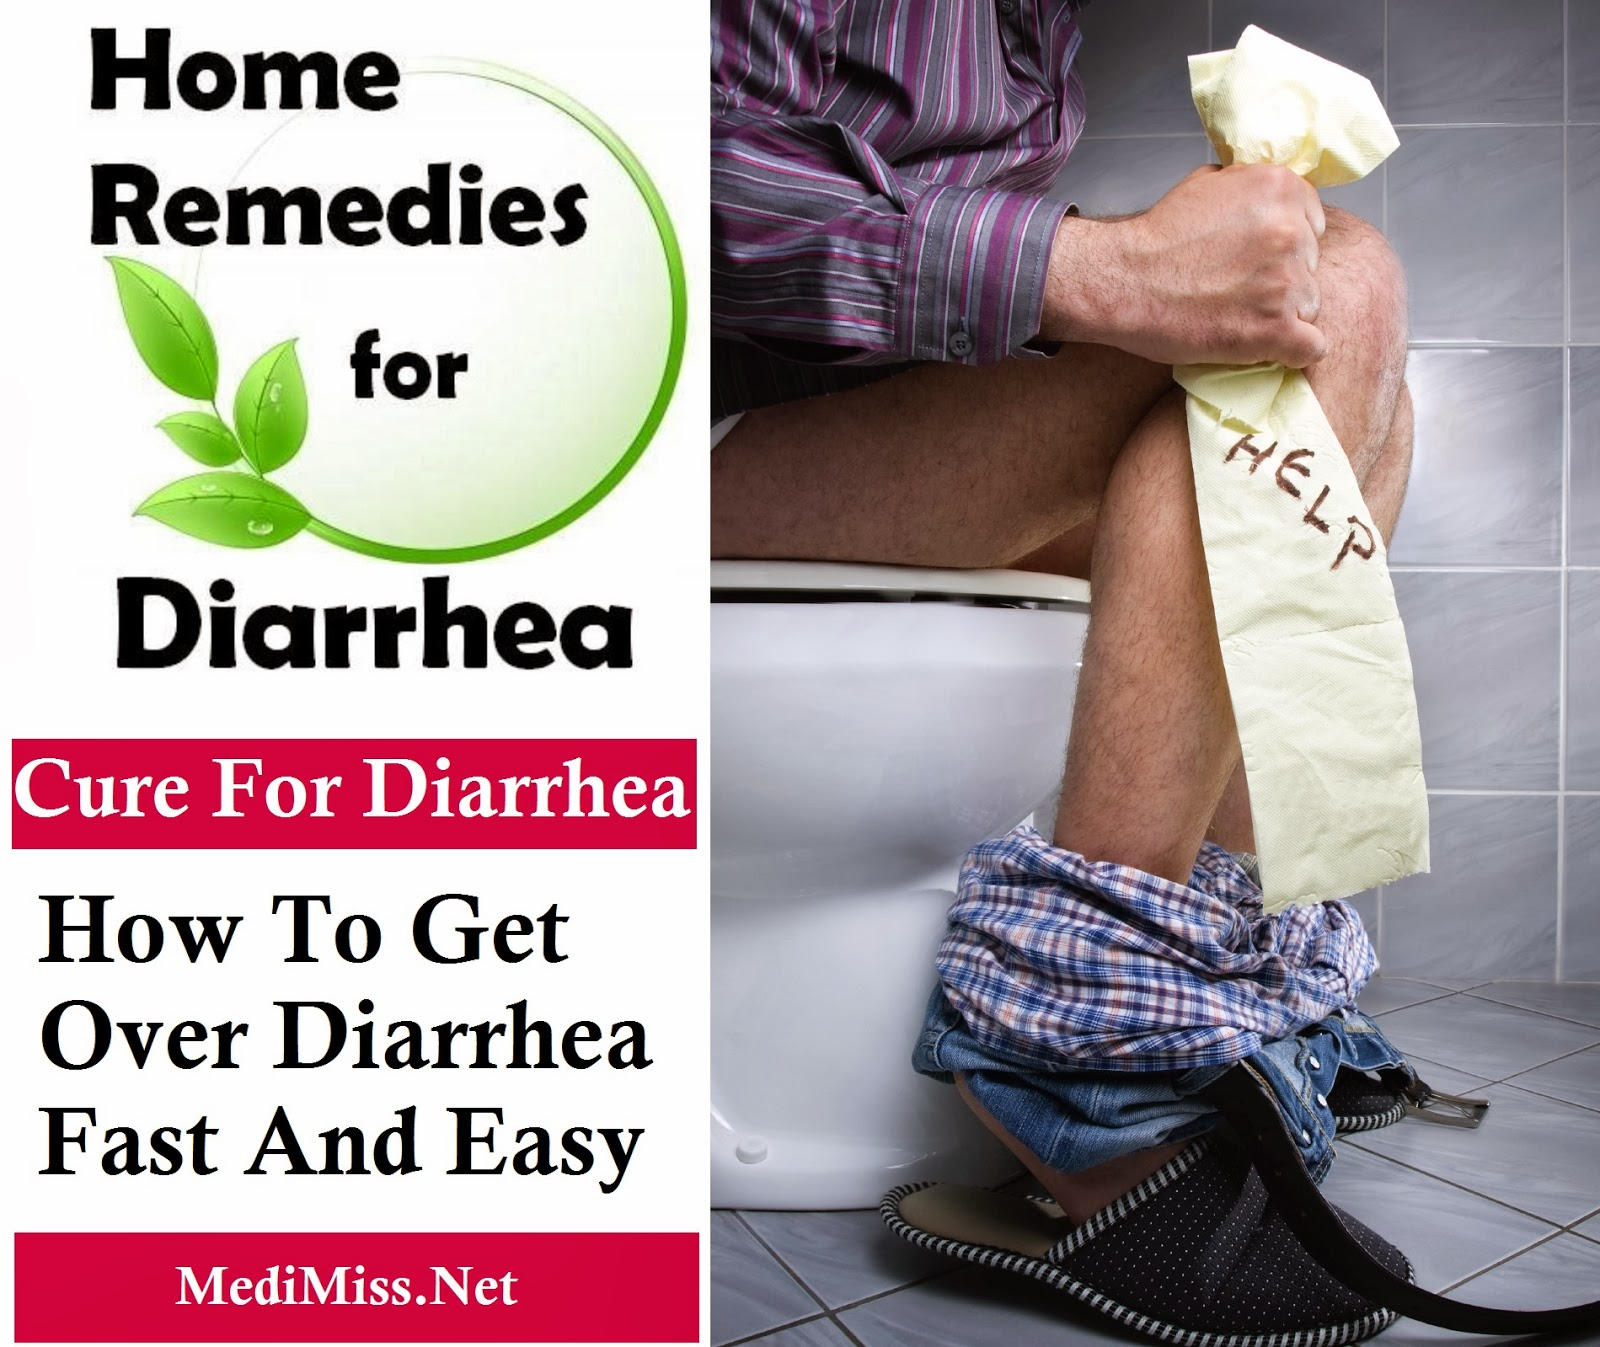 Cure For Diarrhea - How To Get Over Diarrhea Fast And Easy ...